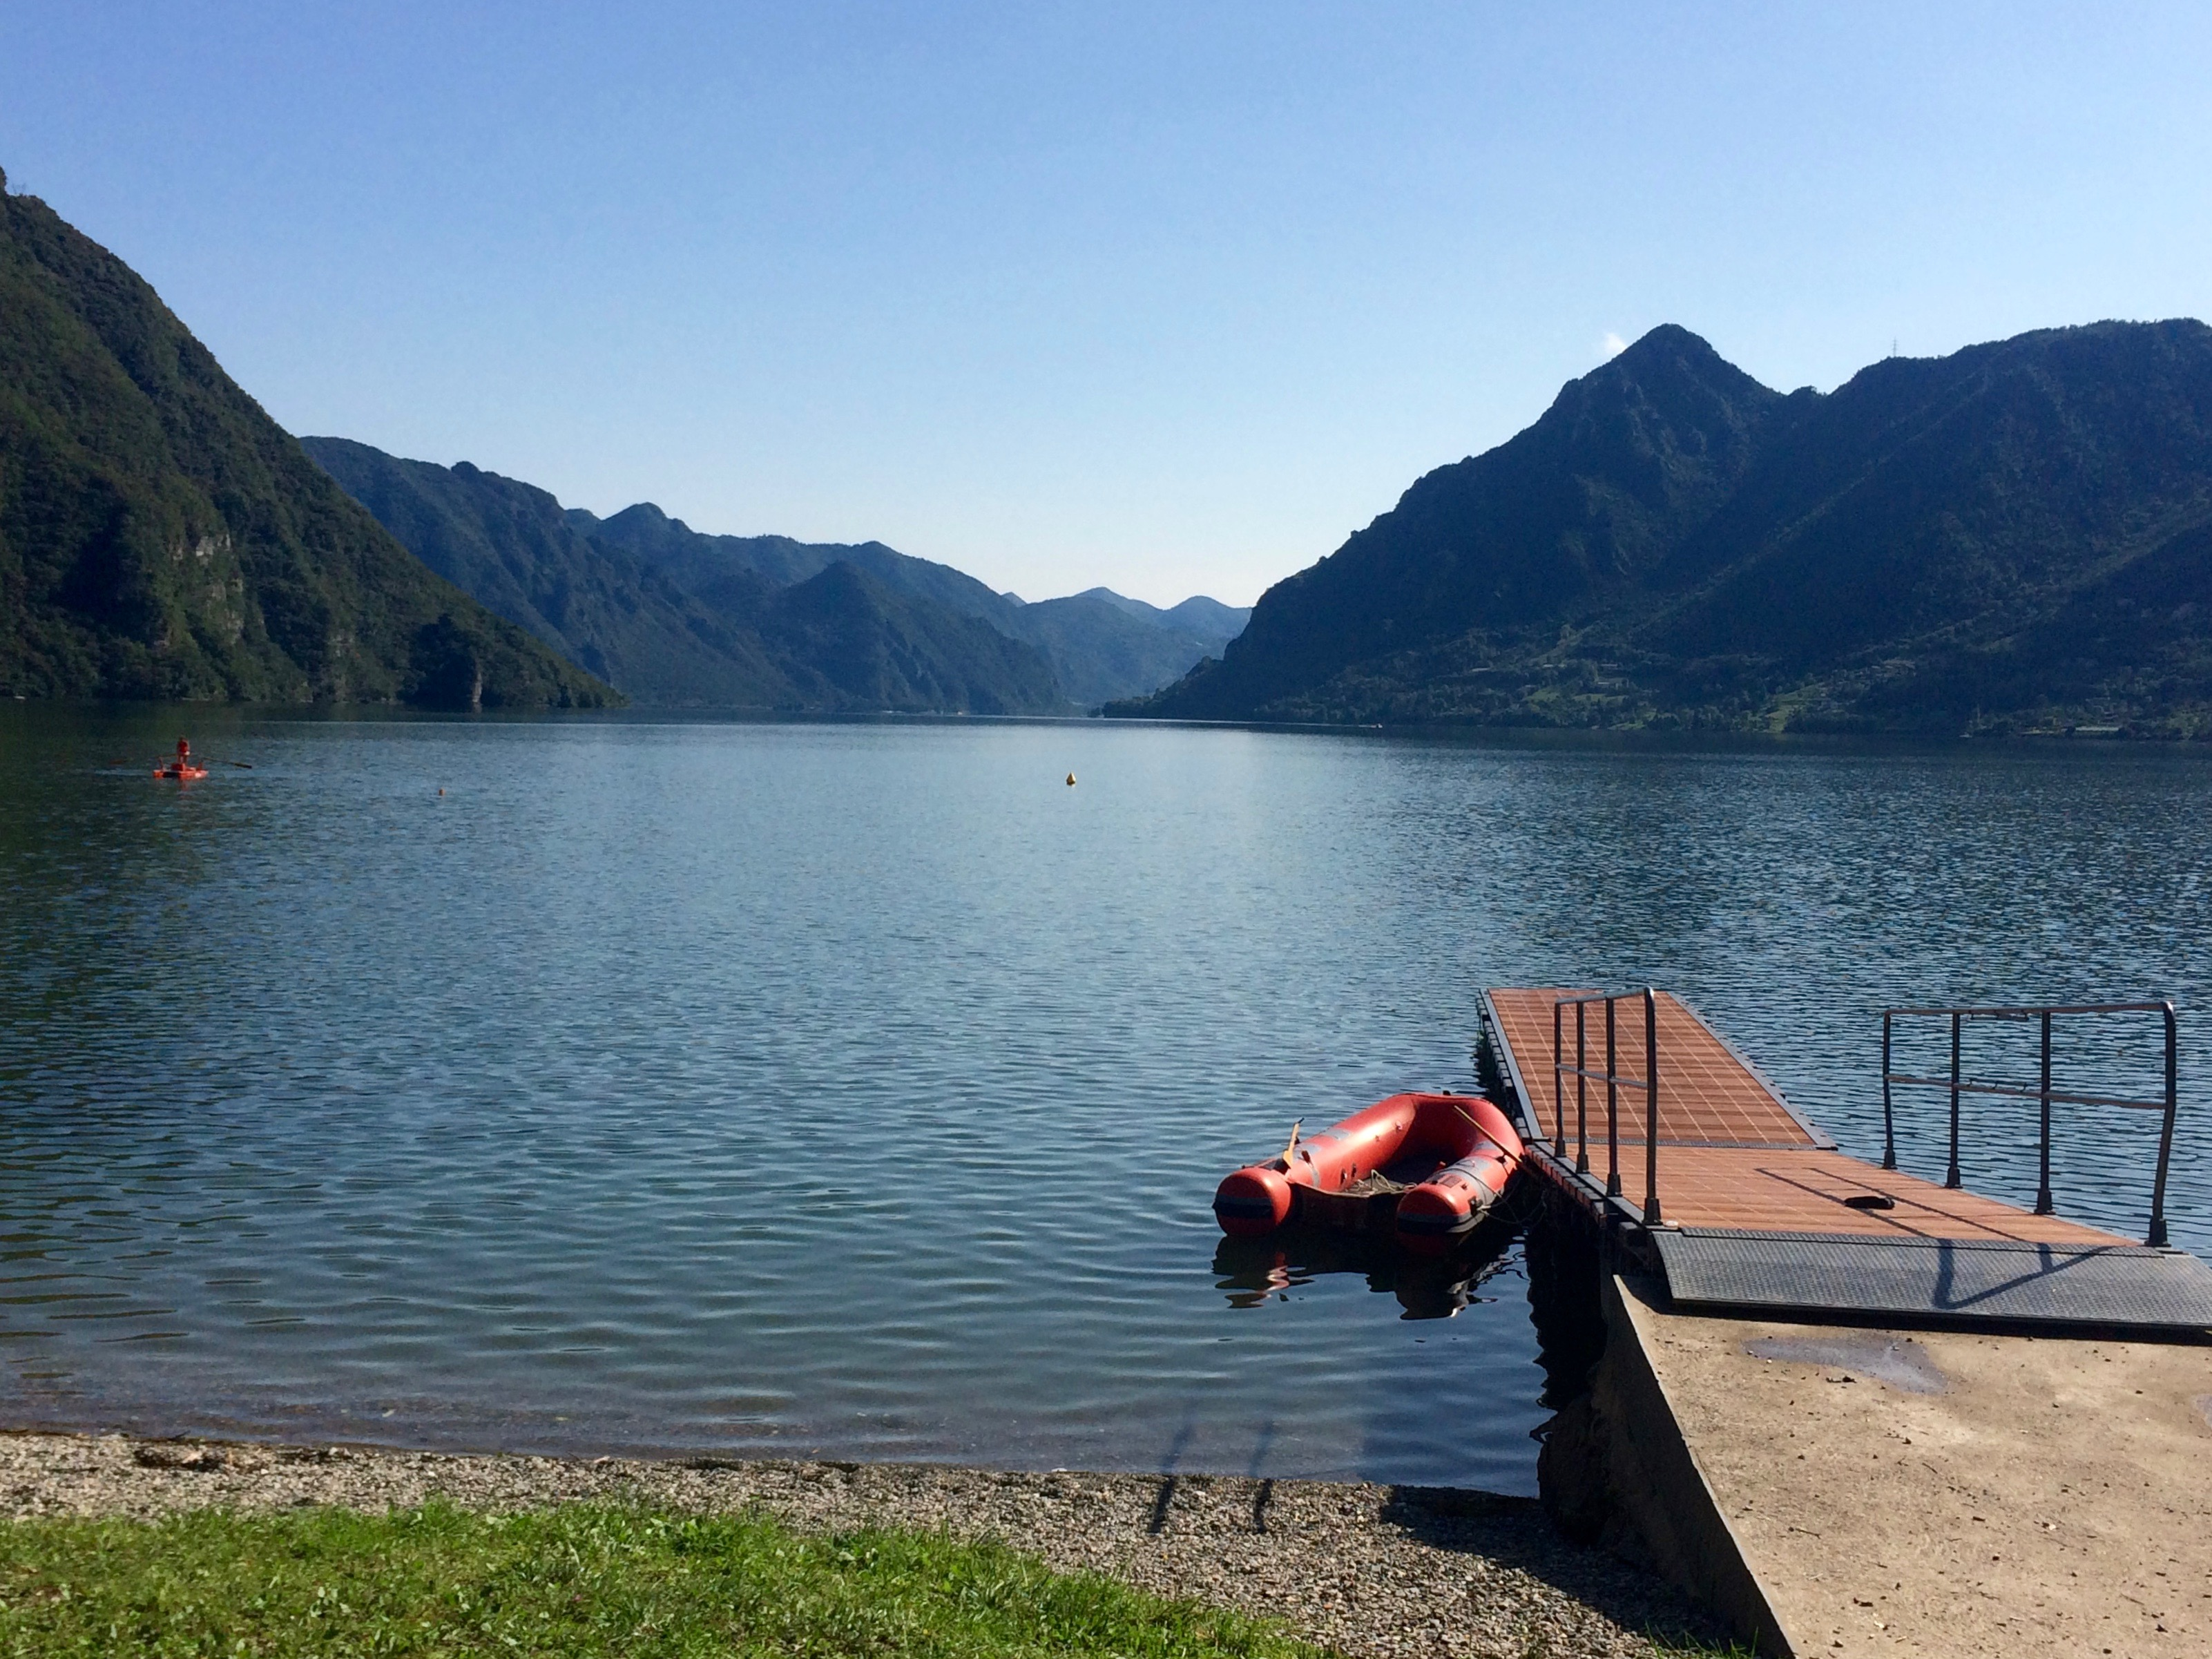 Great dock to jump off and into Lake Idro!